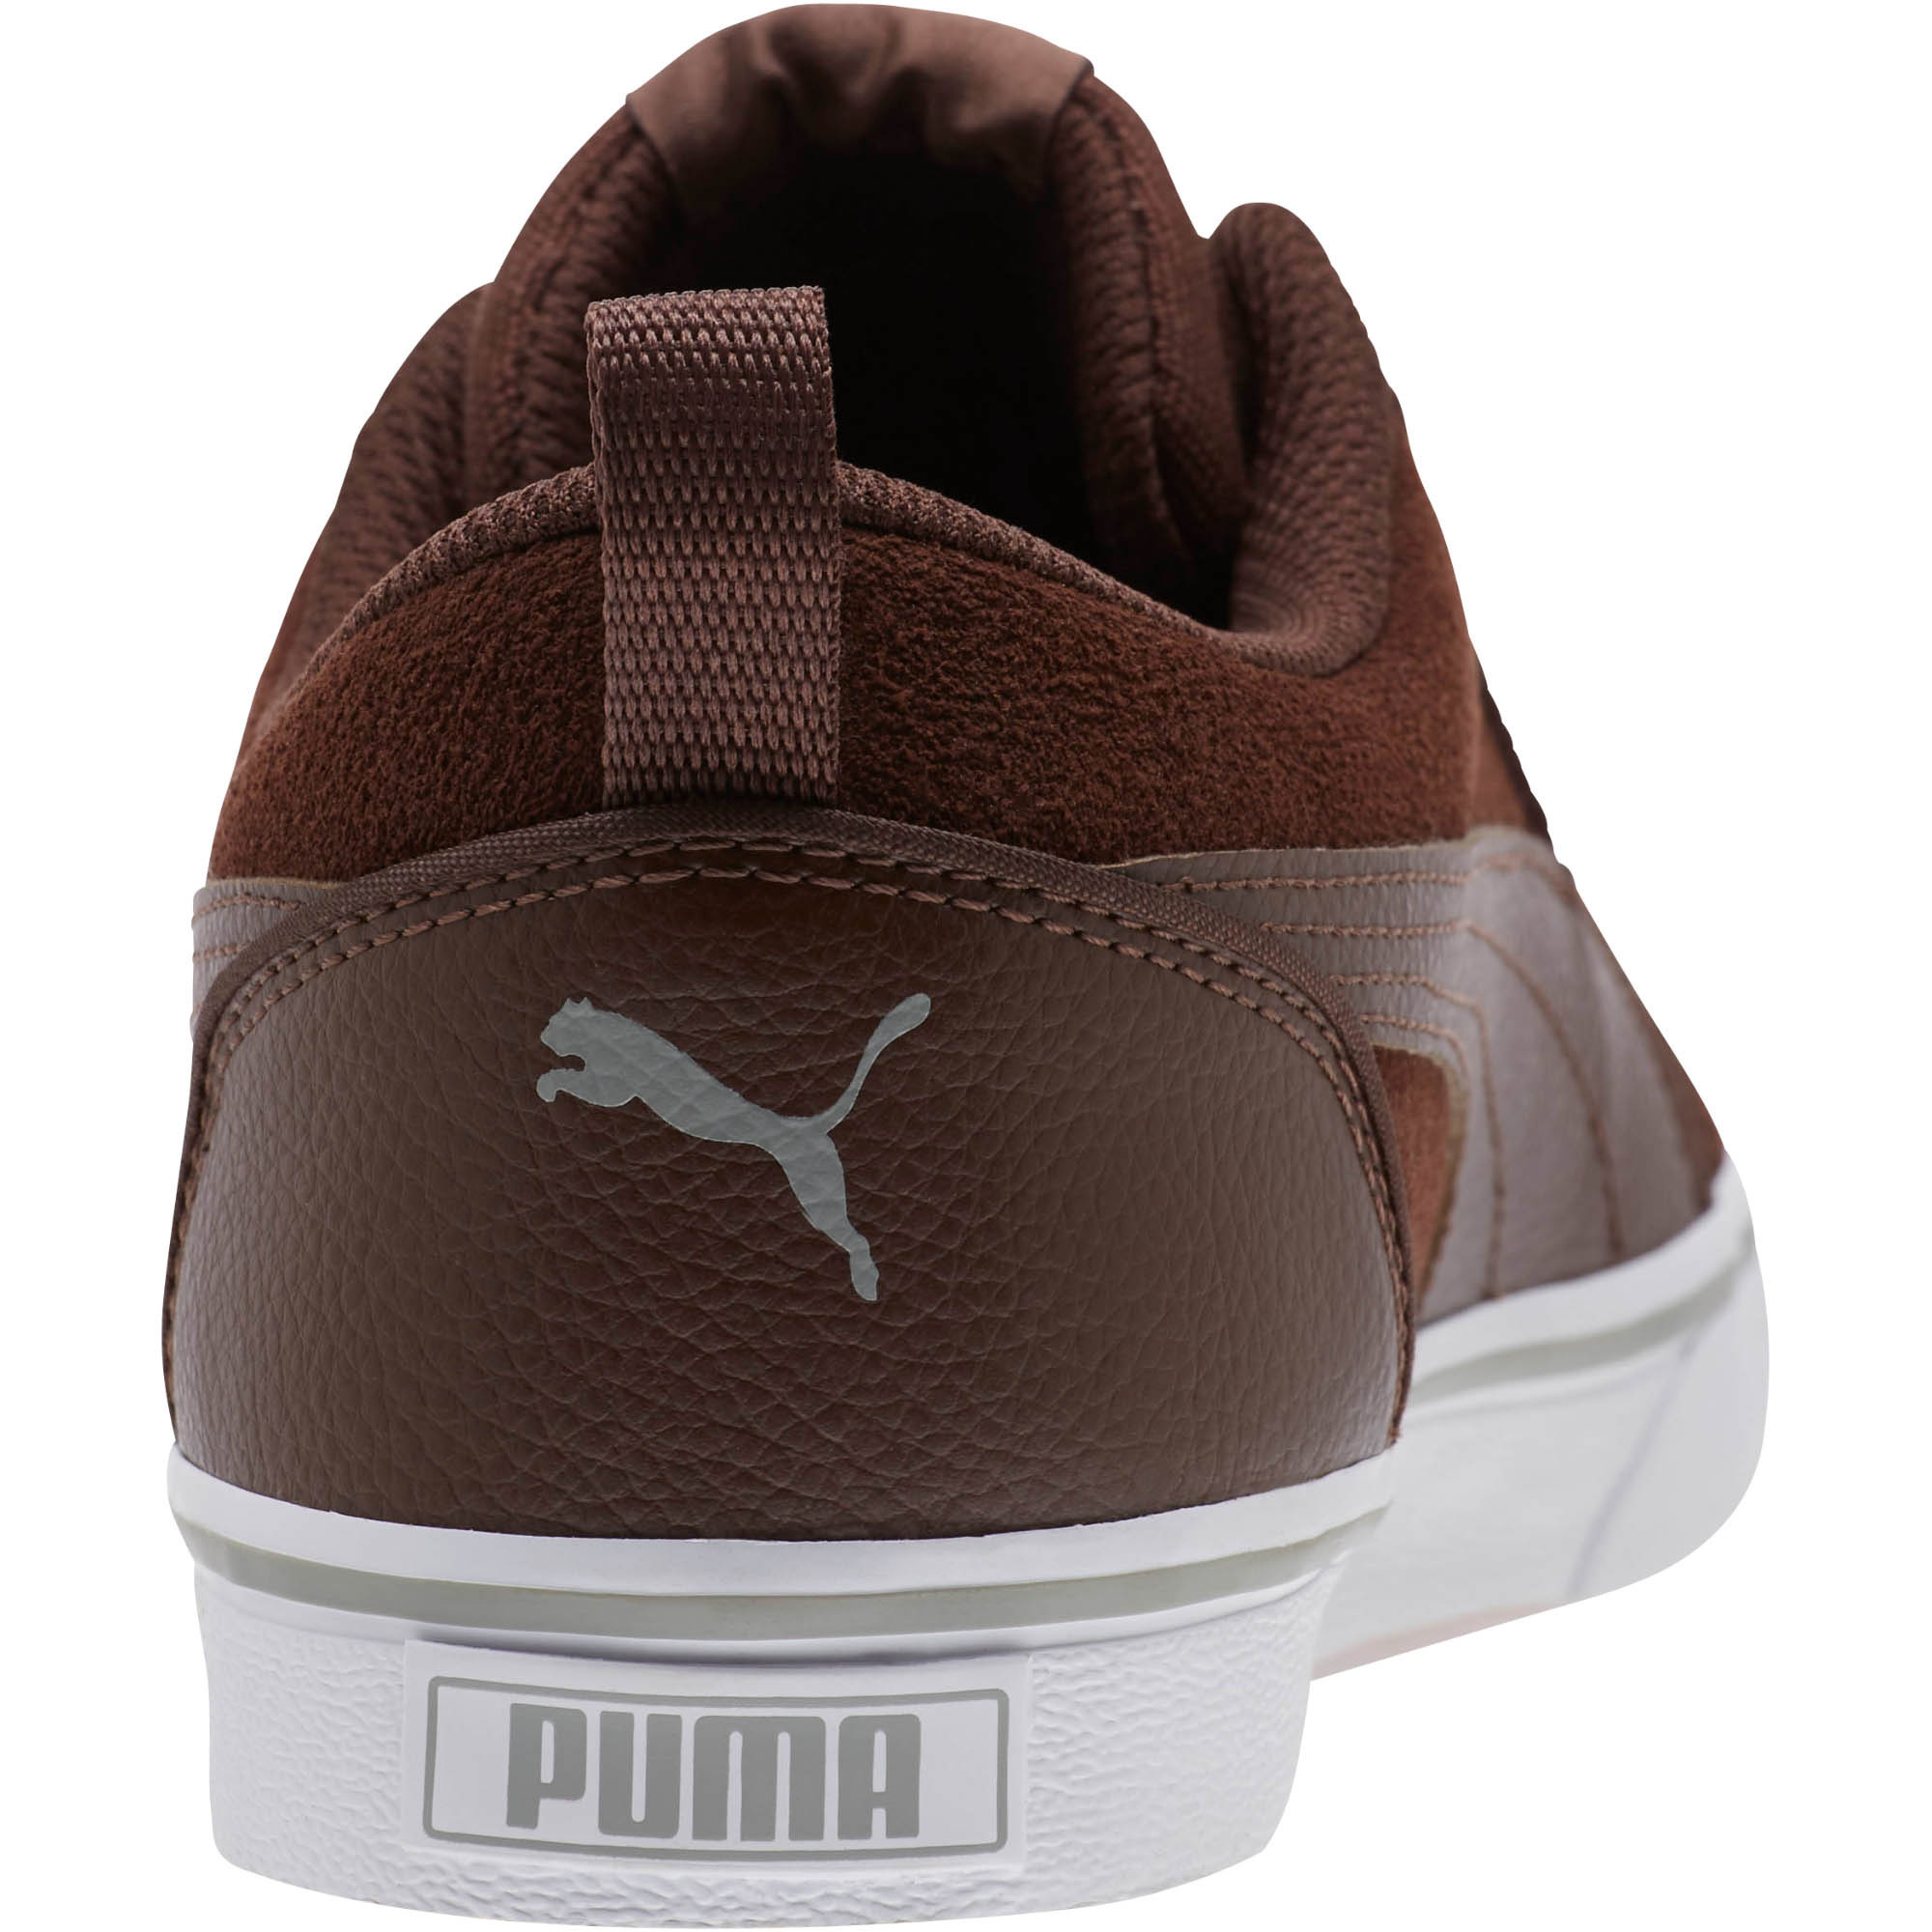 PUMA-Puma-Bridger-SD-Men-039-s-Sneakers-Men-Shoe-Basics thumbnail 3